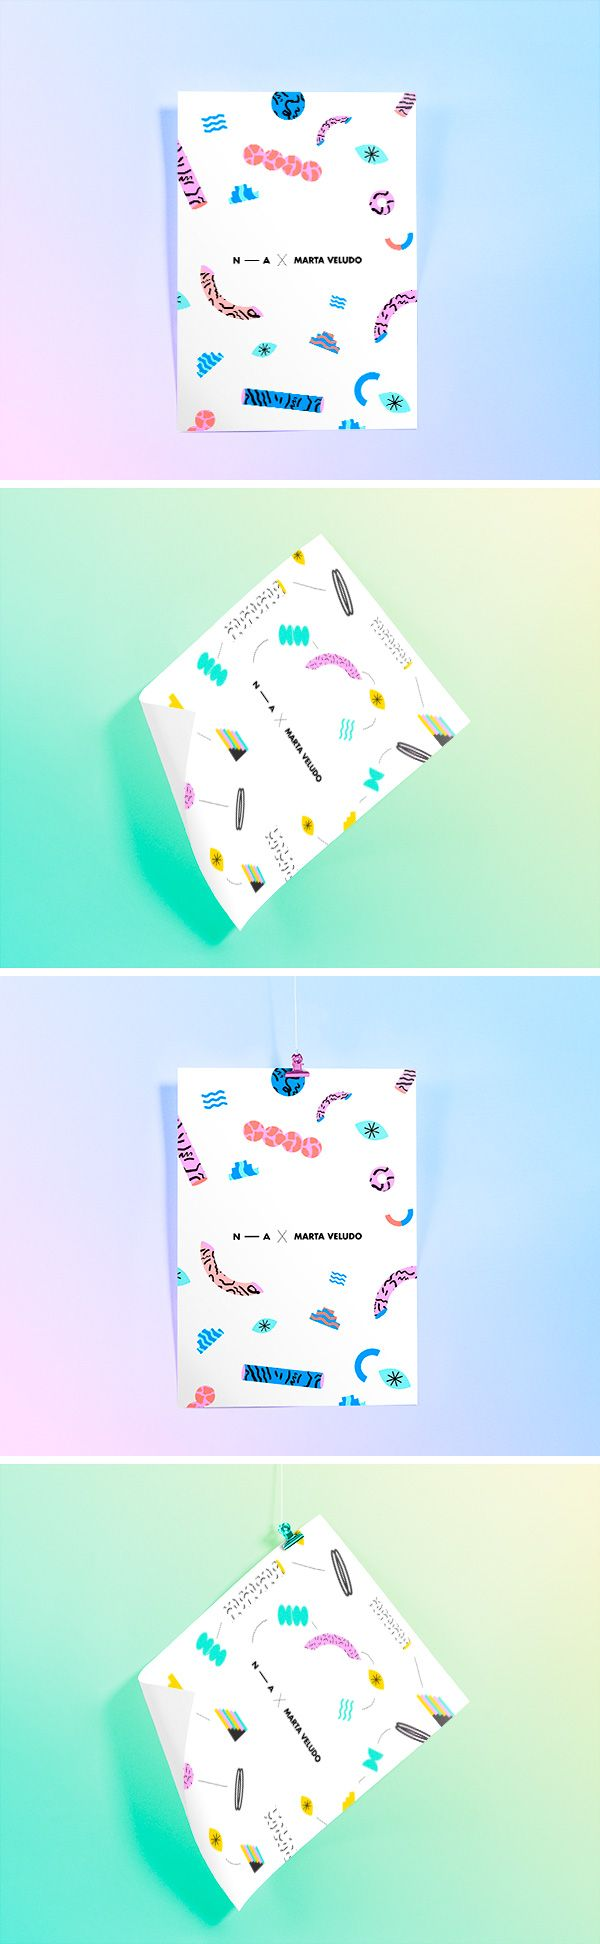 Poster design resources - Find This Pin And More On Freebie Design Resources